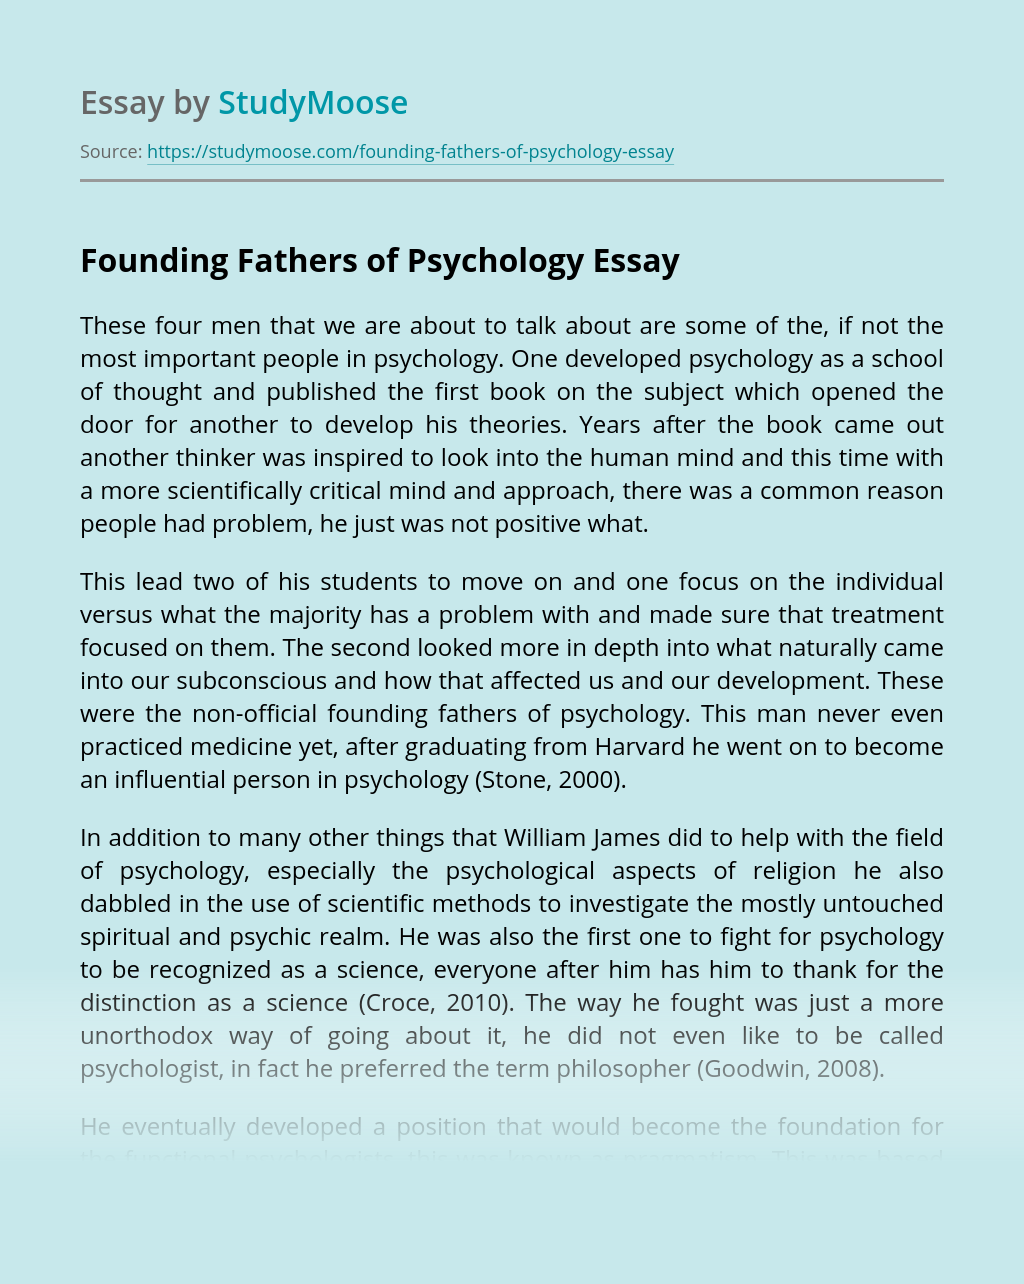 Write me reflective essay on founding fathers business ethics justice homework help